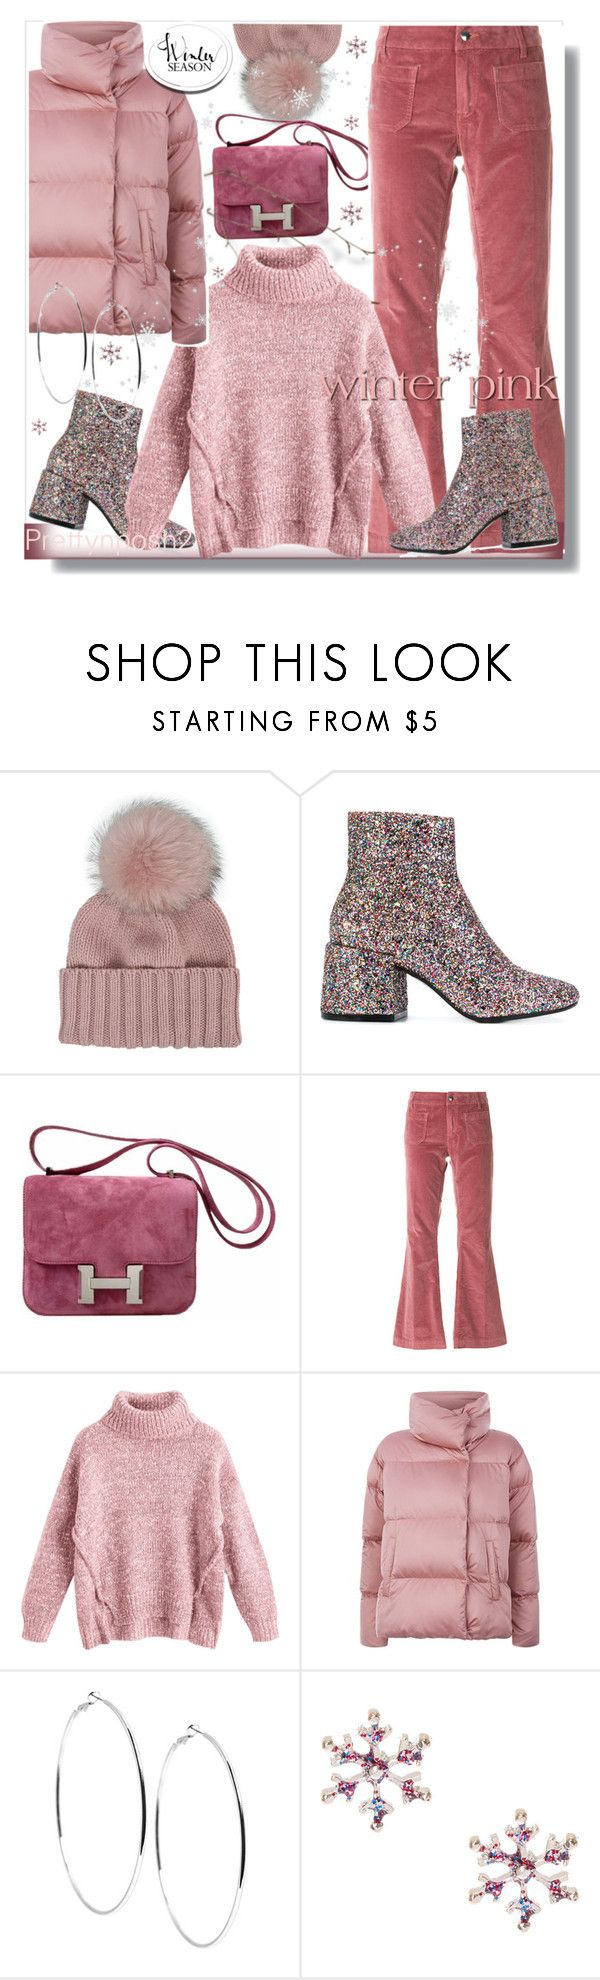 """""""Winter Essentials in Pink! ❄️❄️❄️"""" by prettynposh2 ❤ liked on Polyvore featuring Inverni, MM6 Maison Margiela, Hermès, The Seafarer, Weekend Max Mara, GUESS and Winter"""